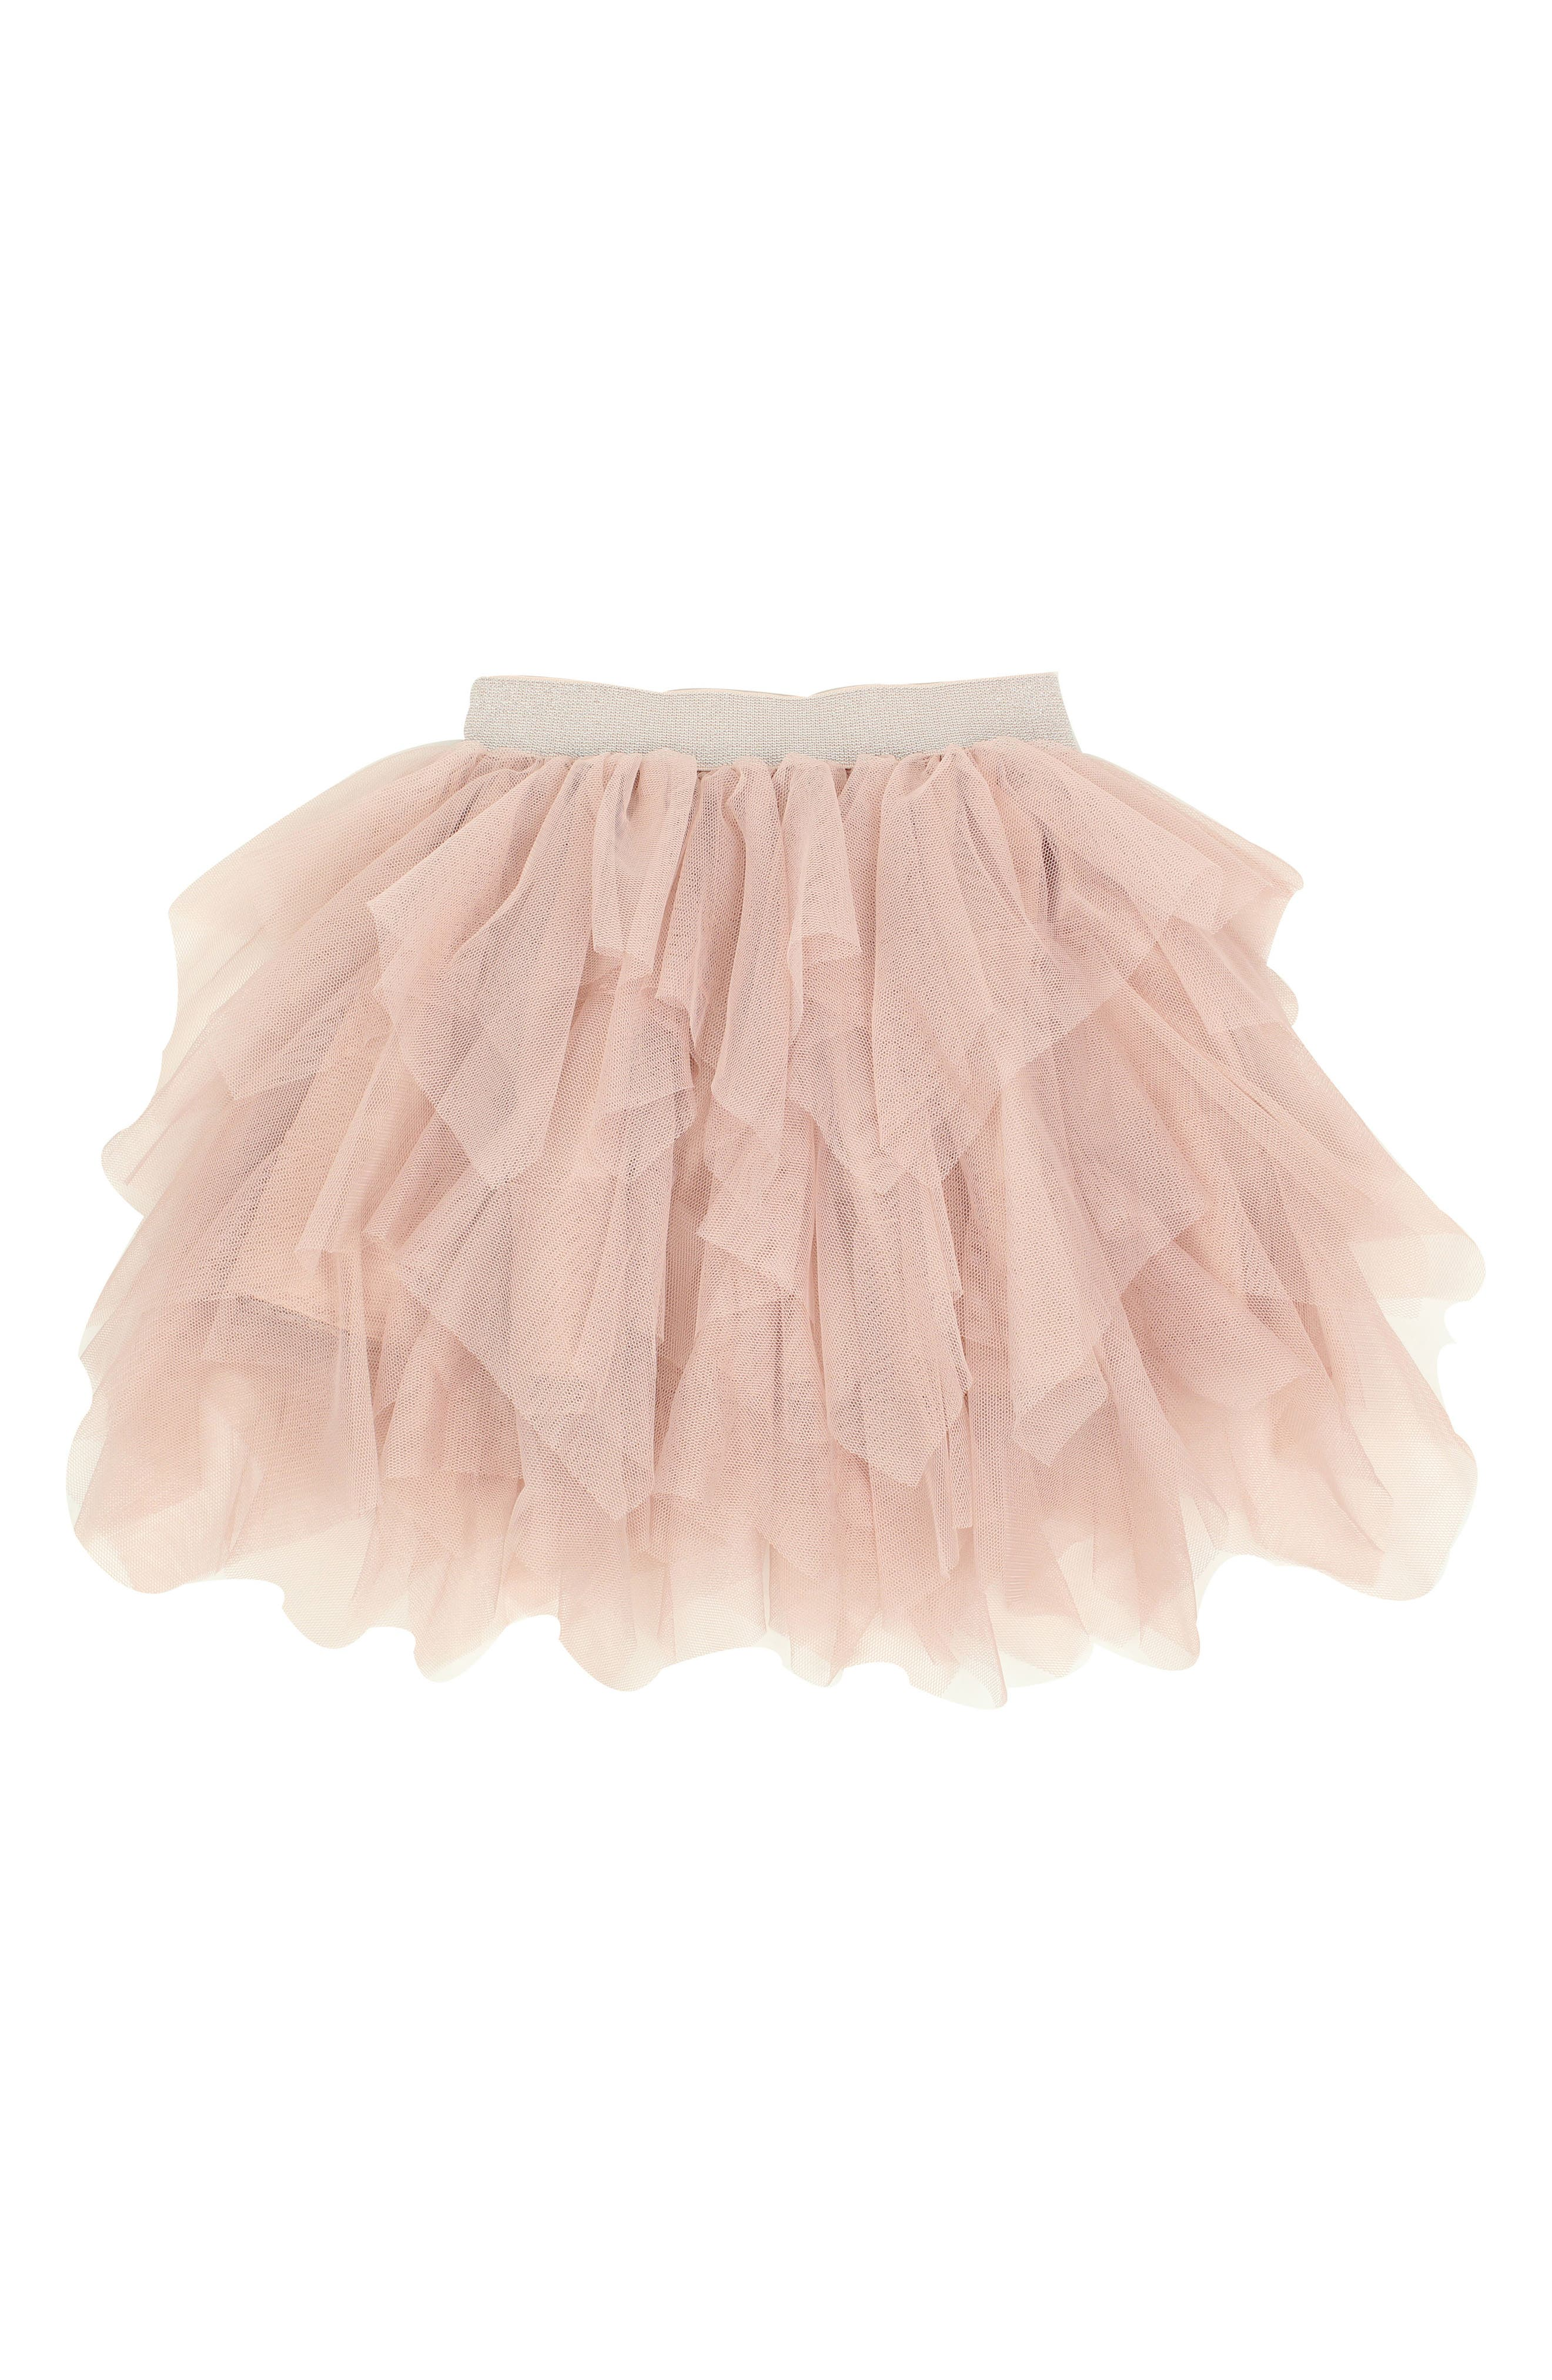 POPATU, Tiered Tulle Skirt, Main thumbnail 1, color, 950